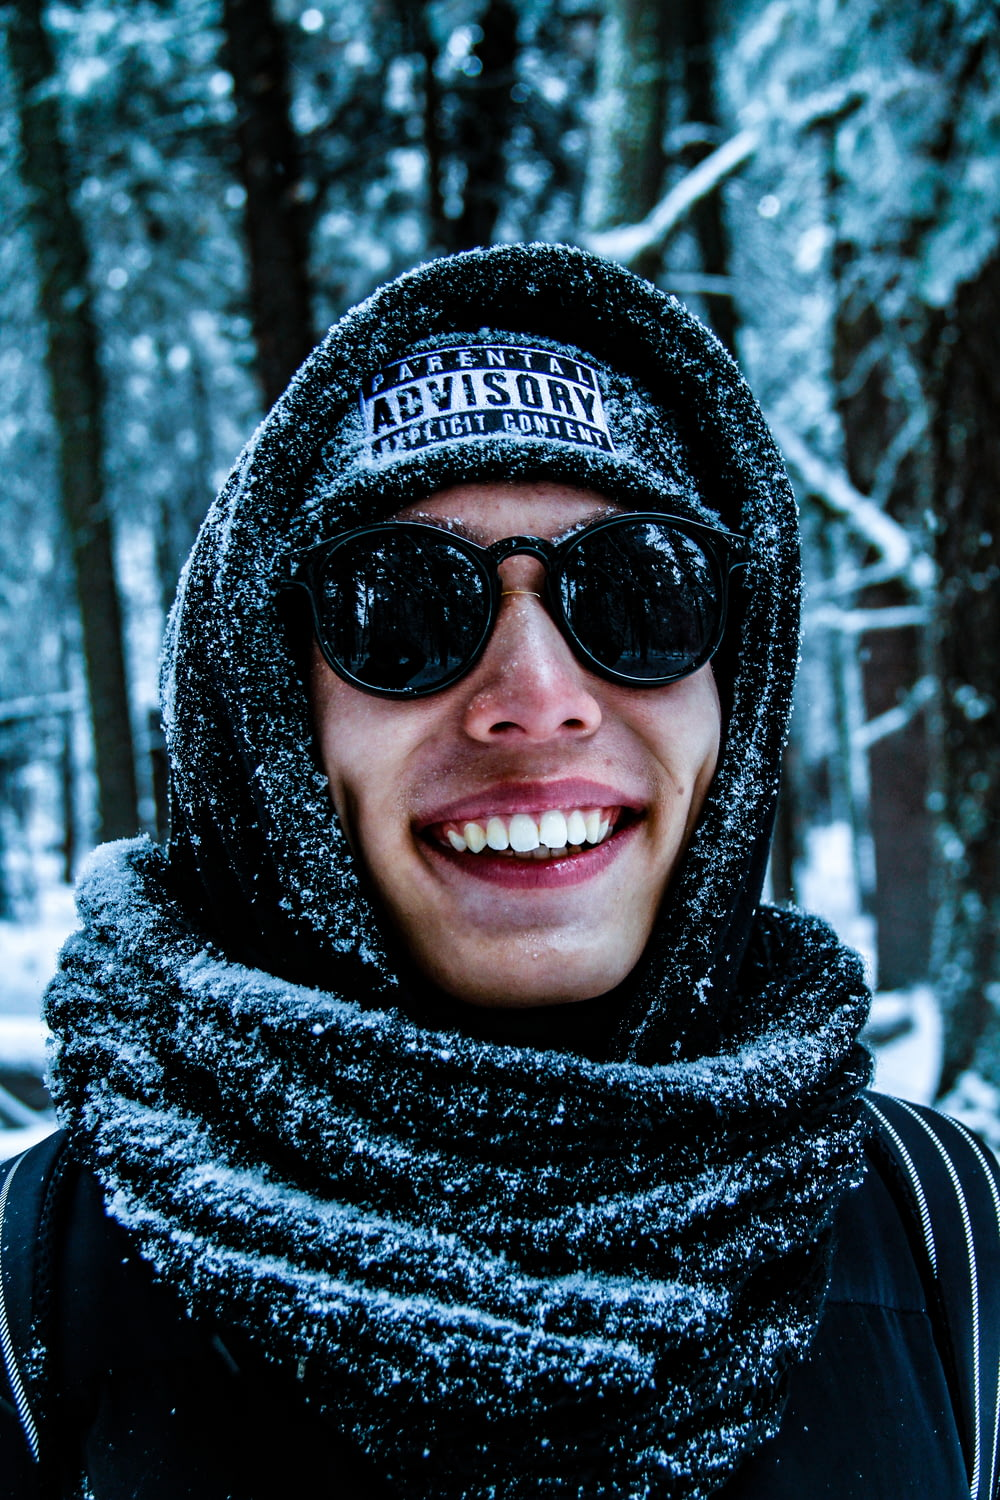 man wearing sunglasses and scarf